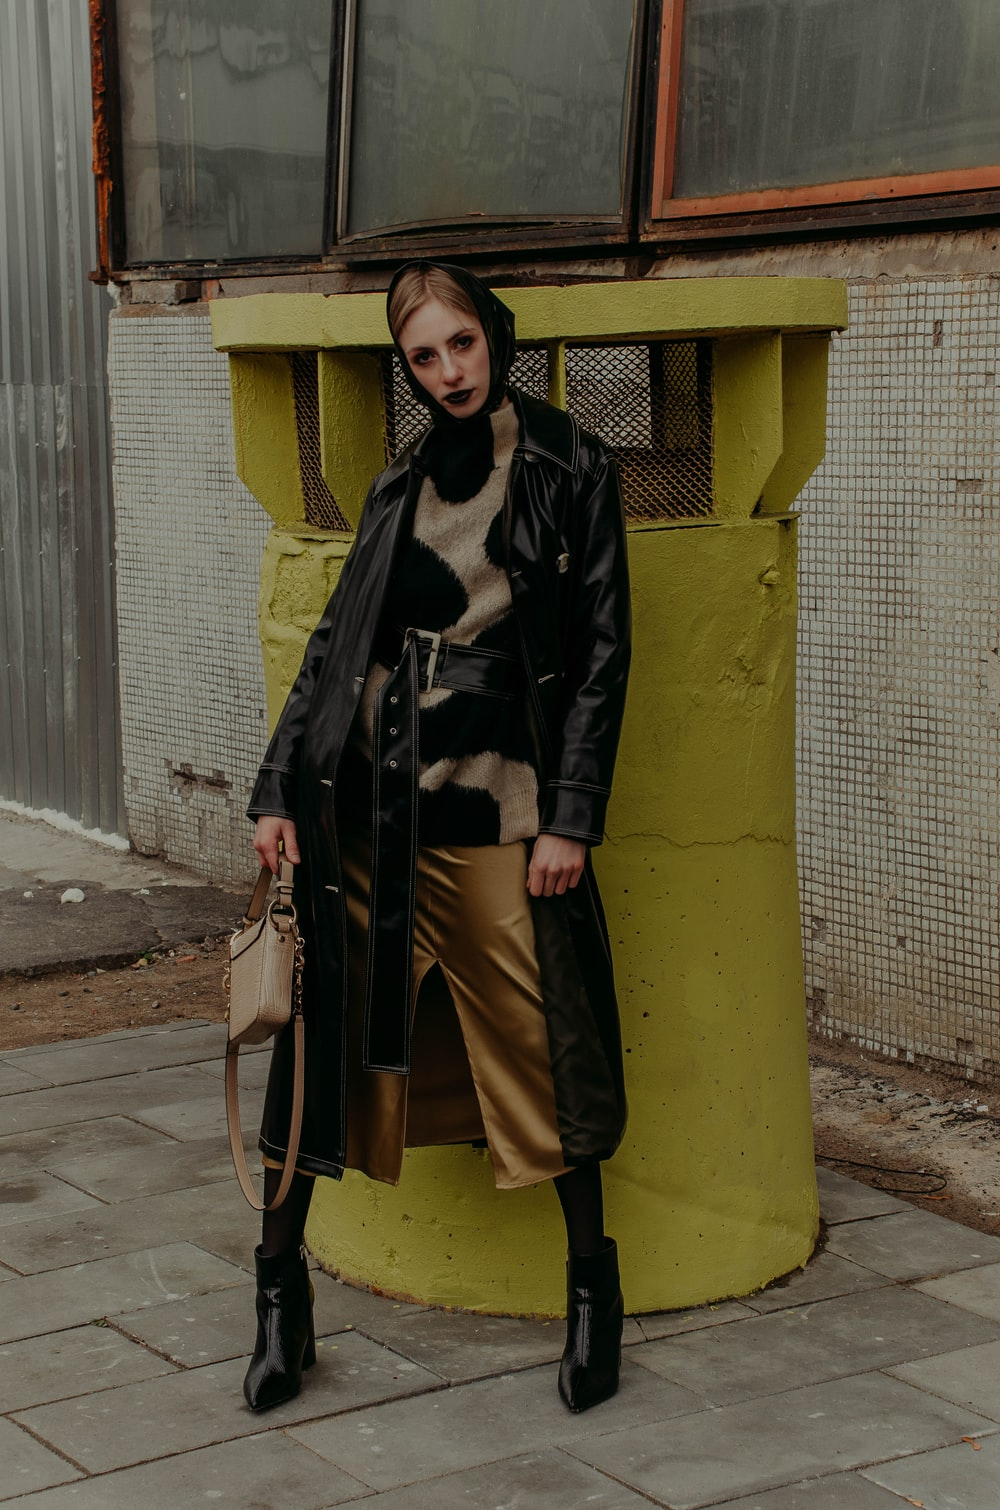 woman in black coat and gray pants standing beside yellow concrete wall